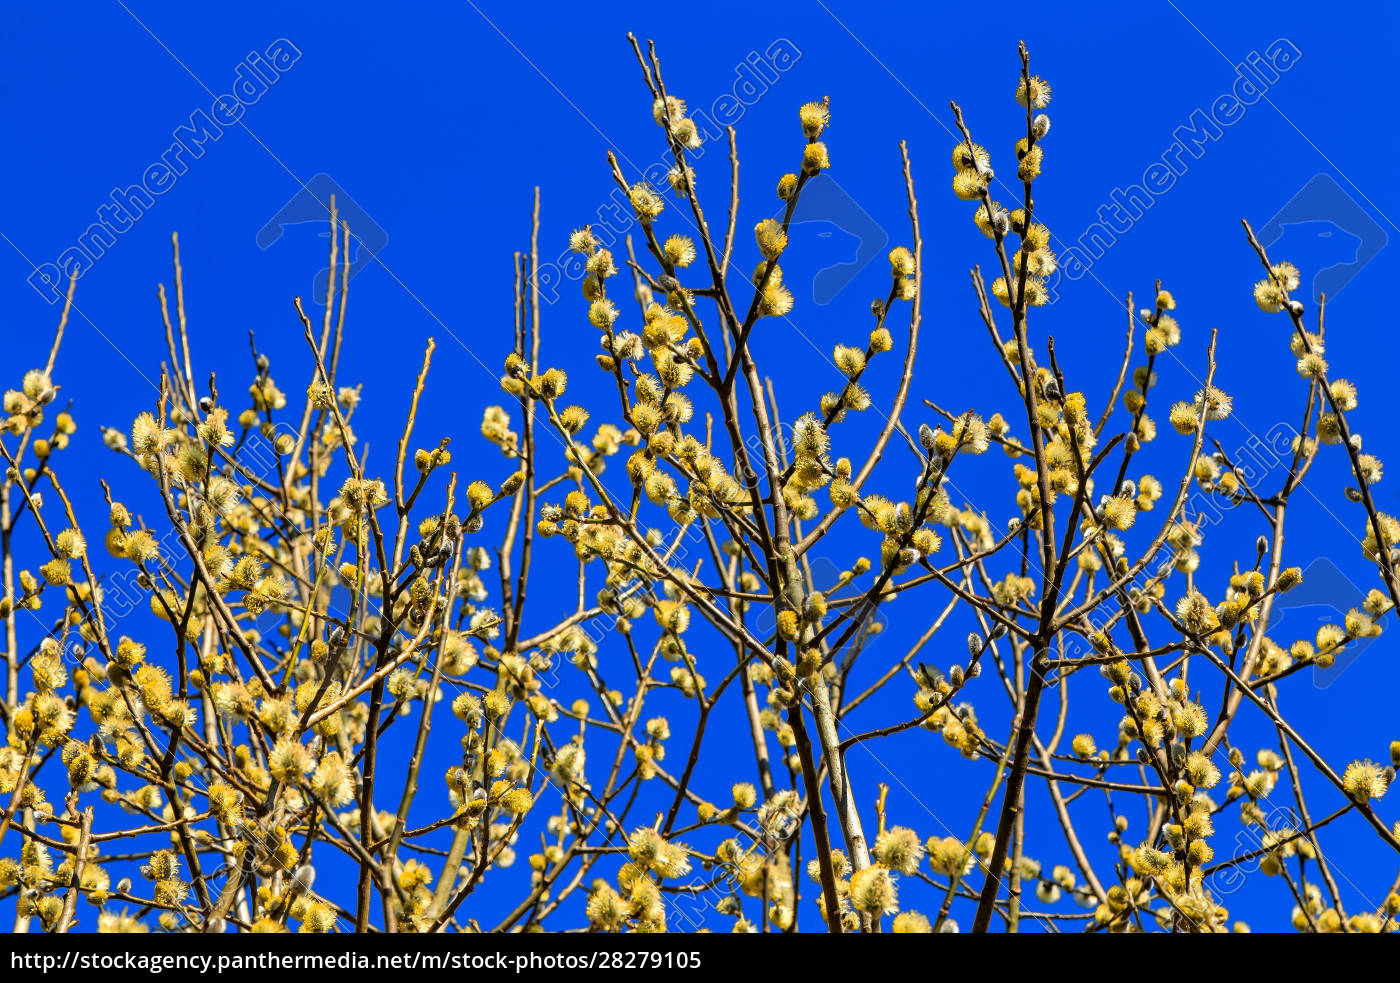 blooming, yellow, willow - 28279105